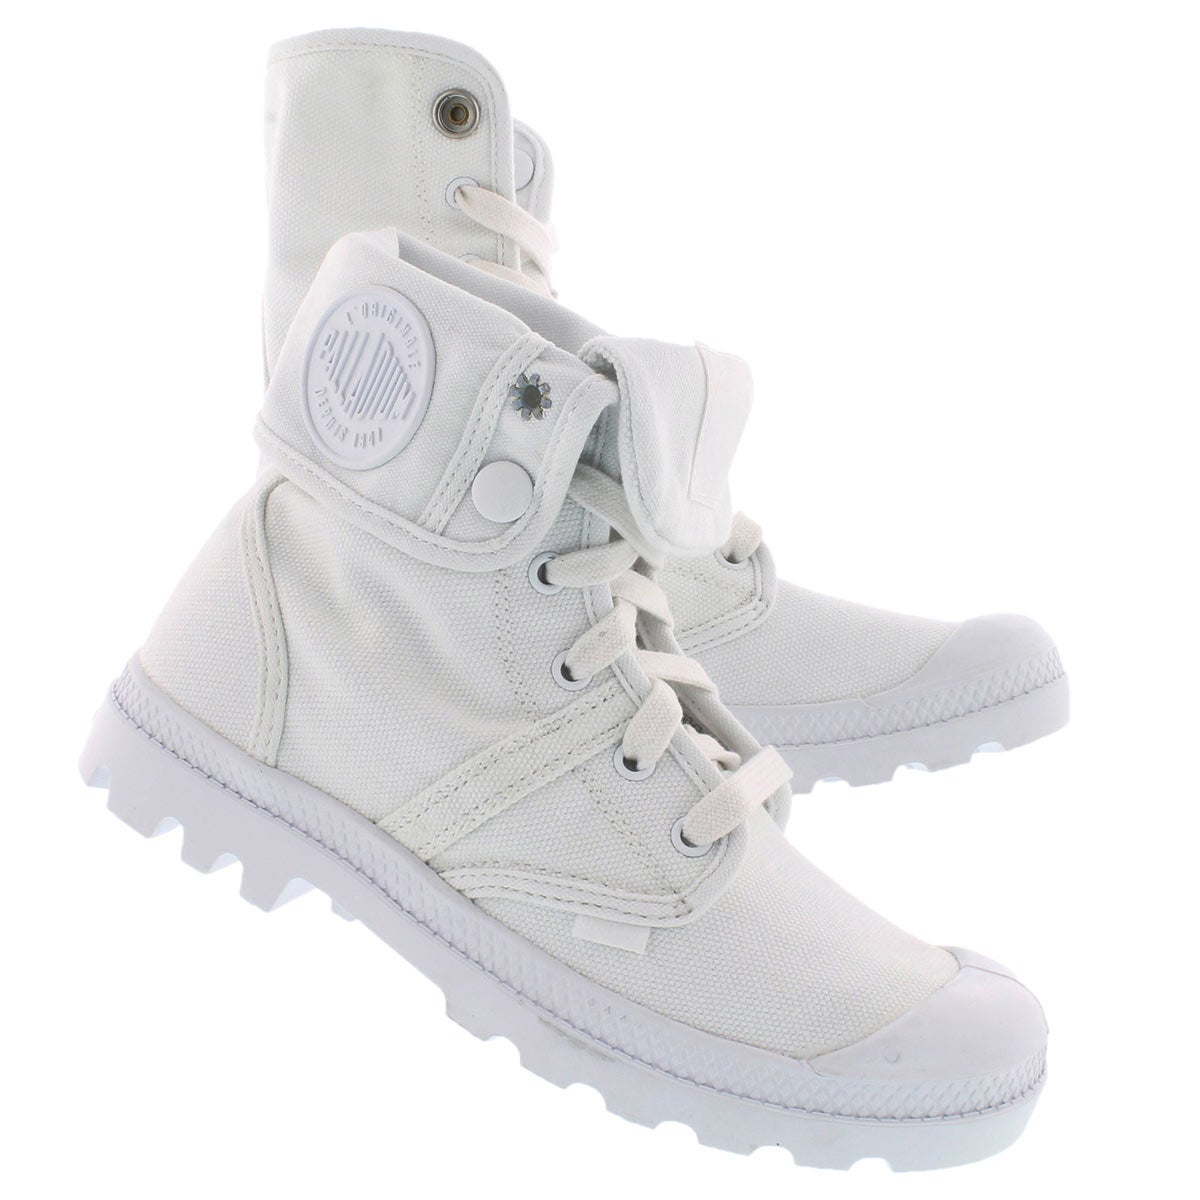 Lds Pallabrouse Baggy white casual boot